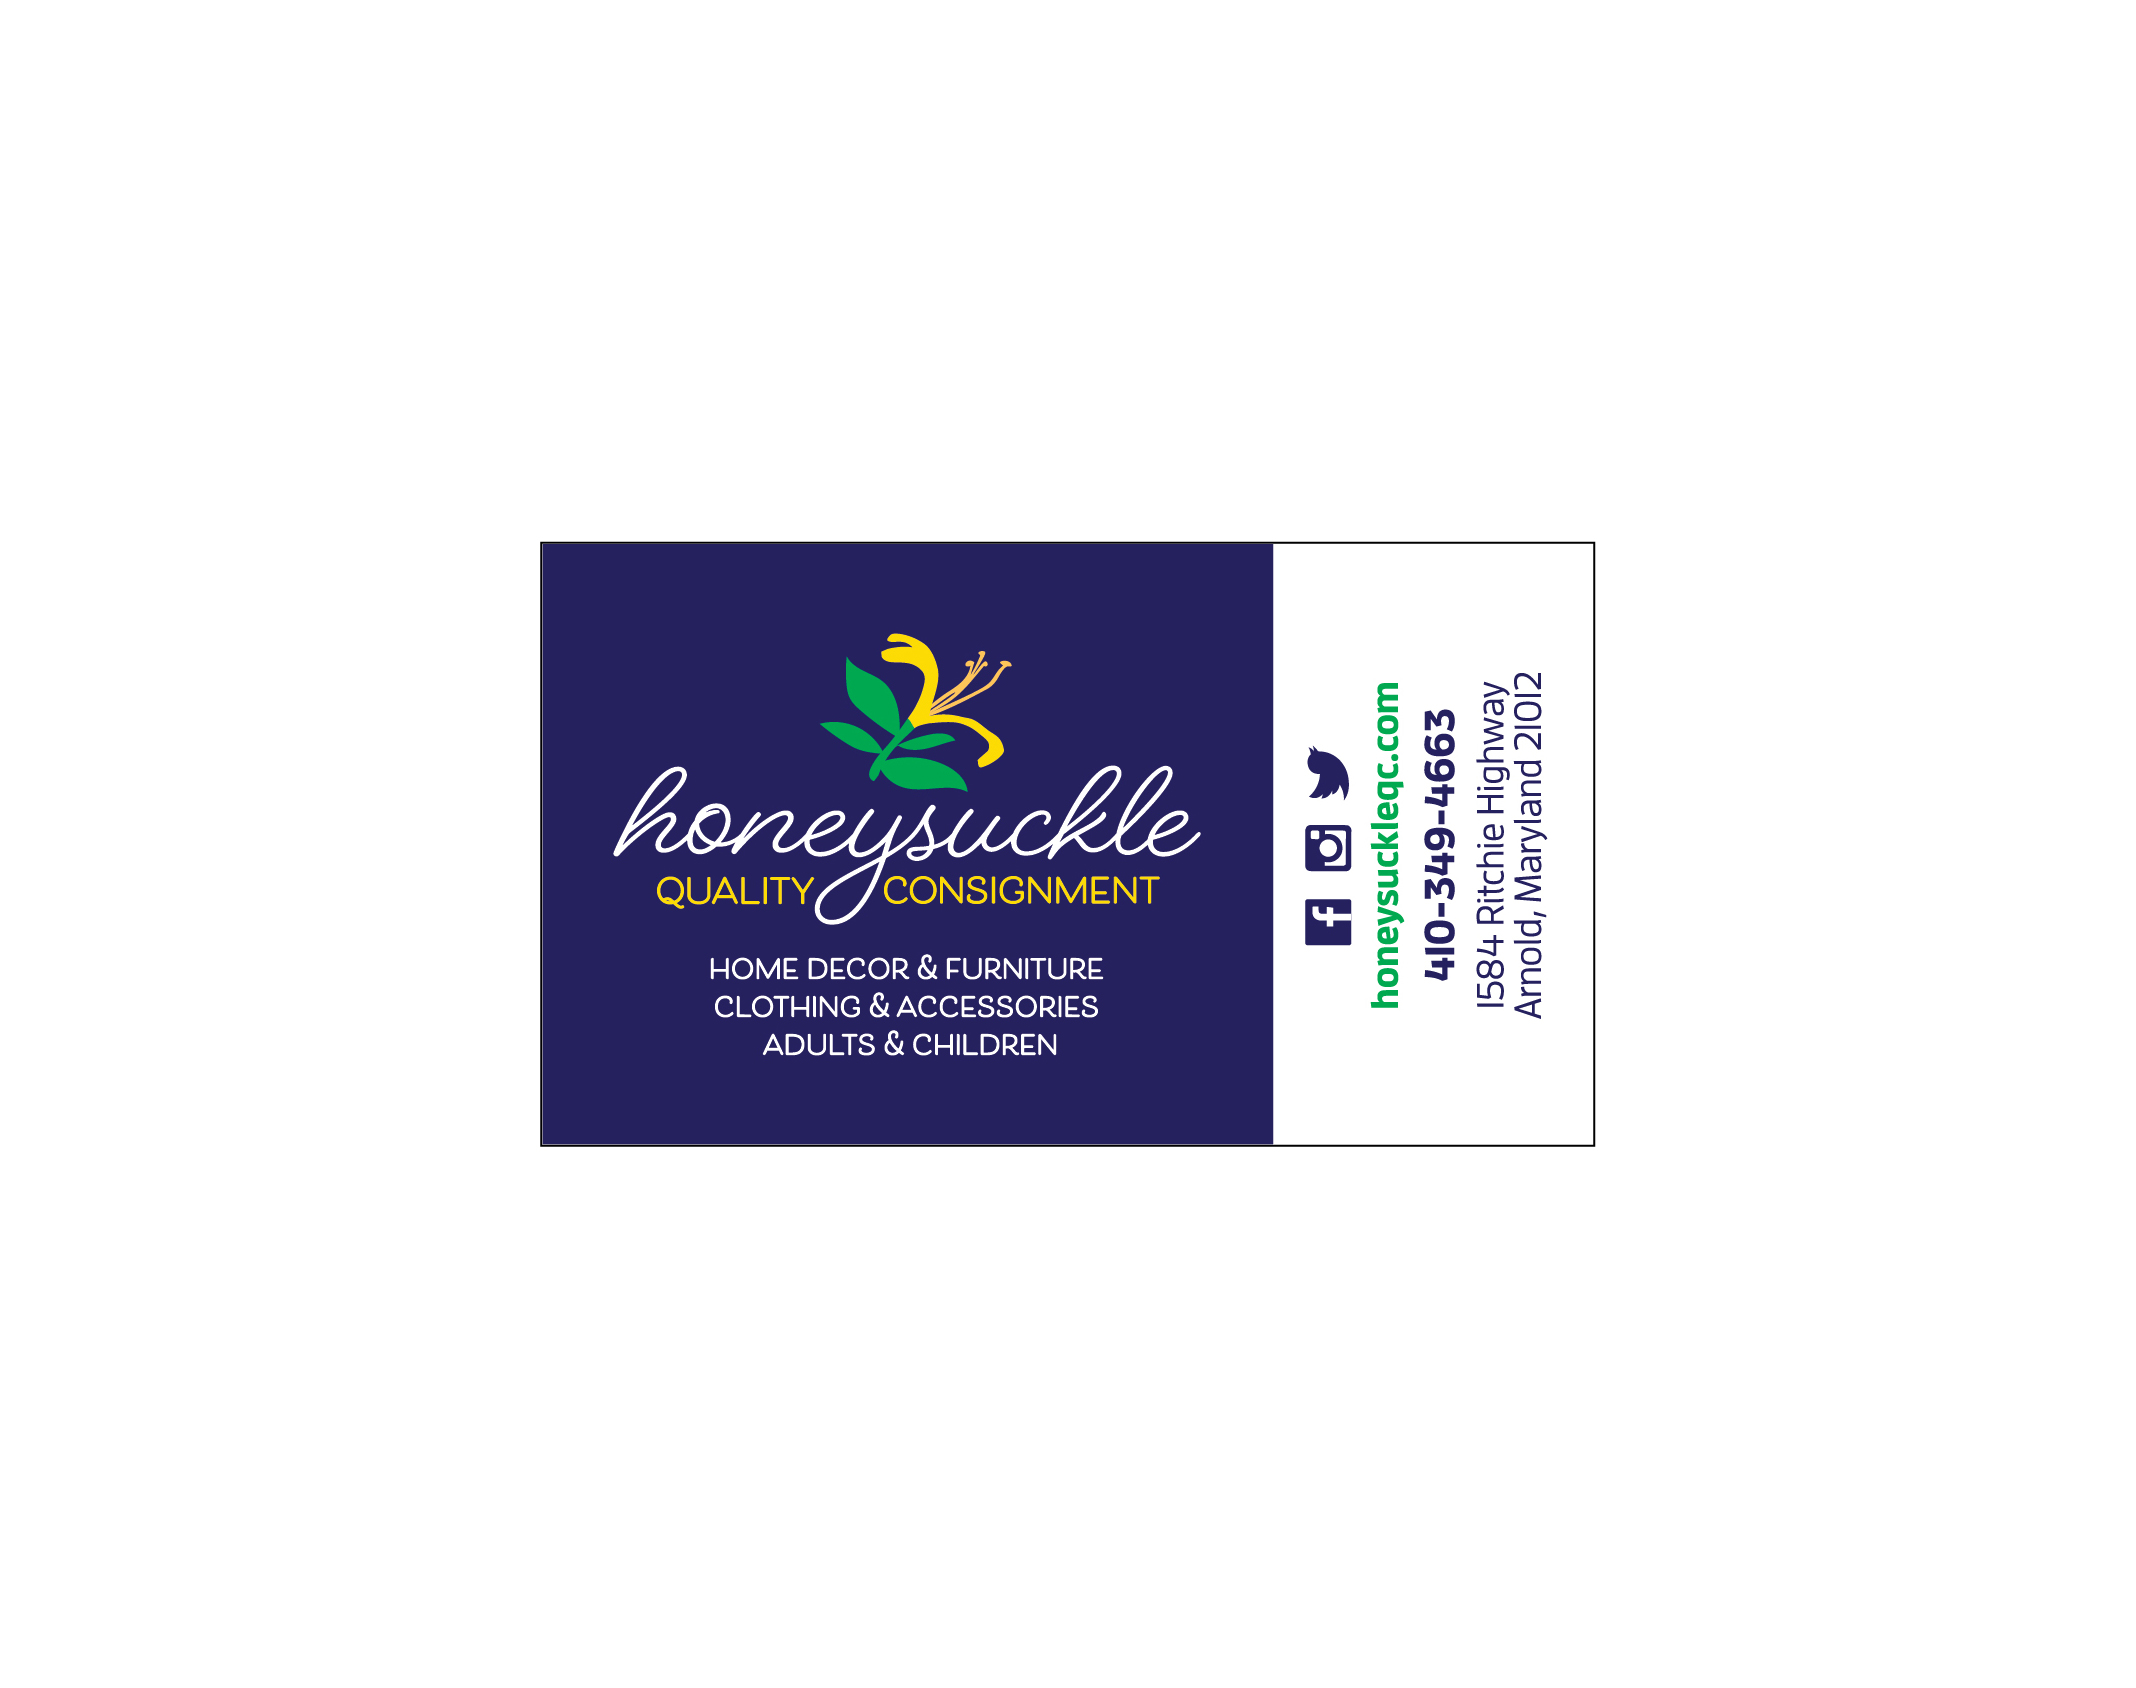 Honeysuckle Quality Consignment Business Card